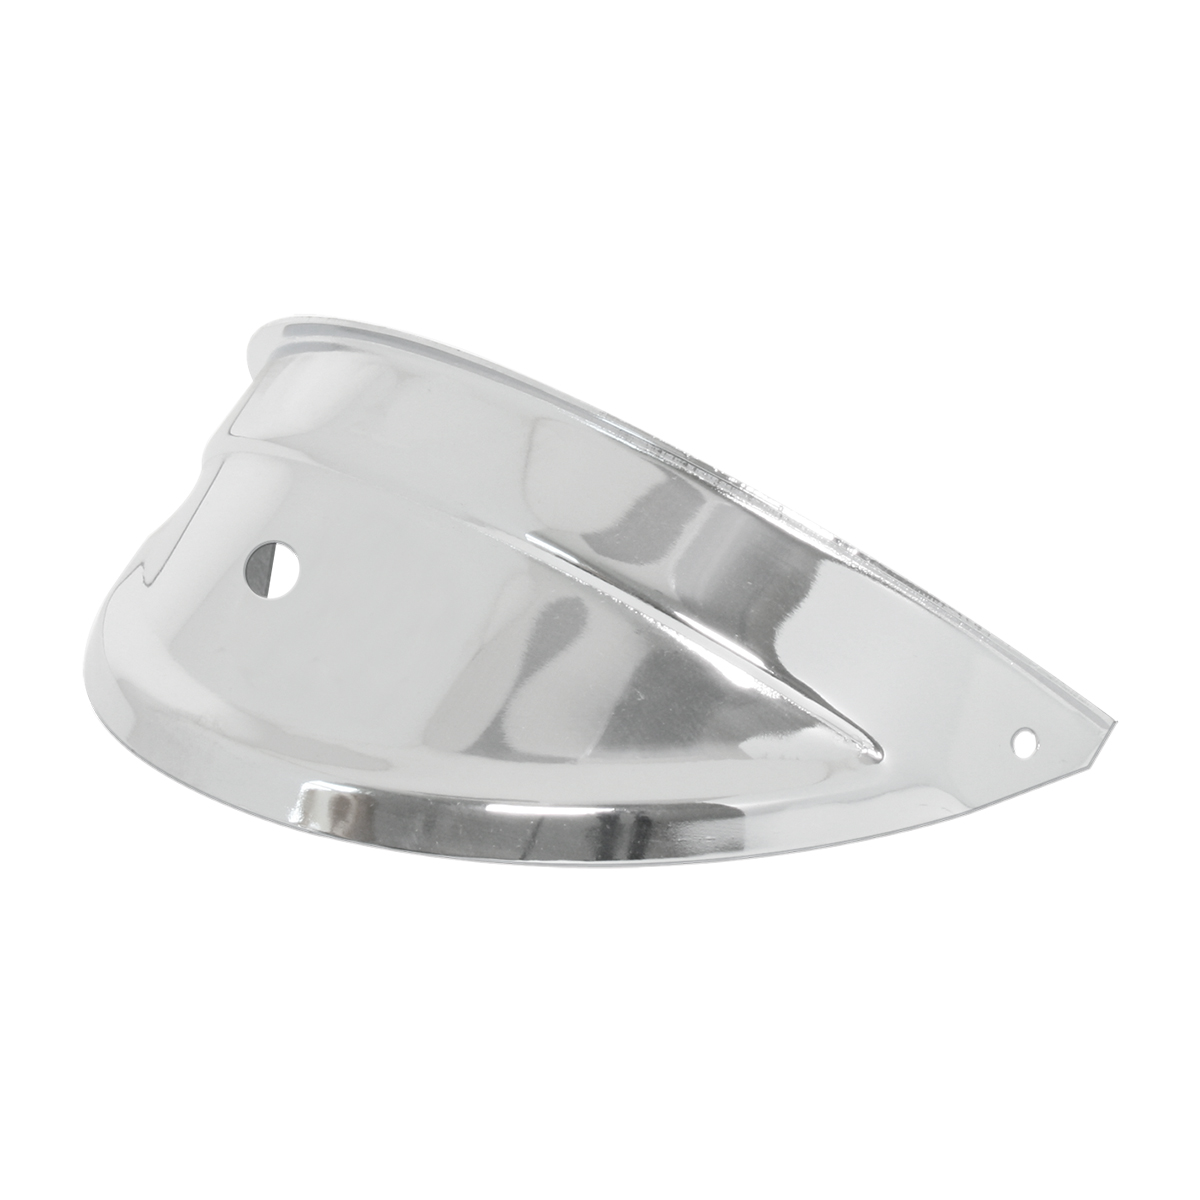 "#92471 7"" Chrome Plated Steel Headlight Visors with ¹⁵∕₁₆"" Hole in Center"